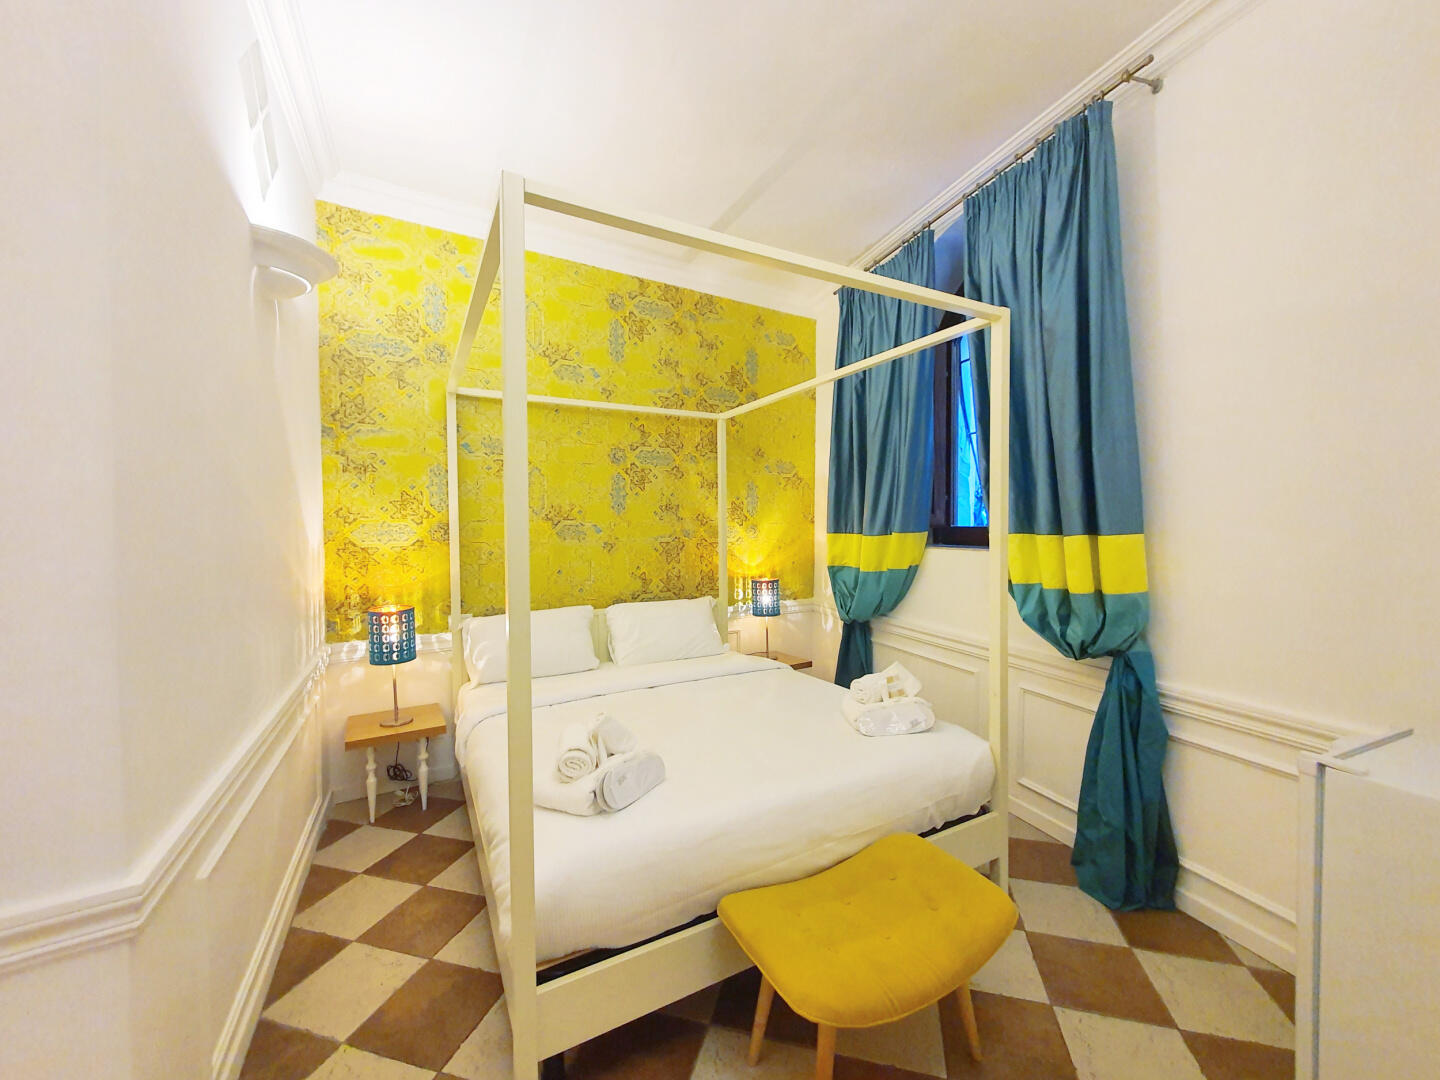 Trevi Holiday | Dream Stay for 2 in Heart of Rome! Slide-1